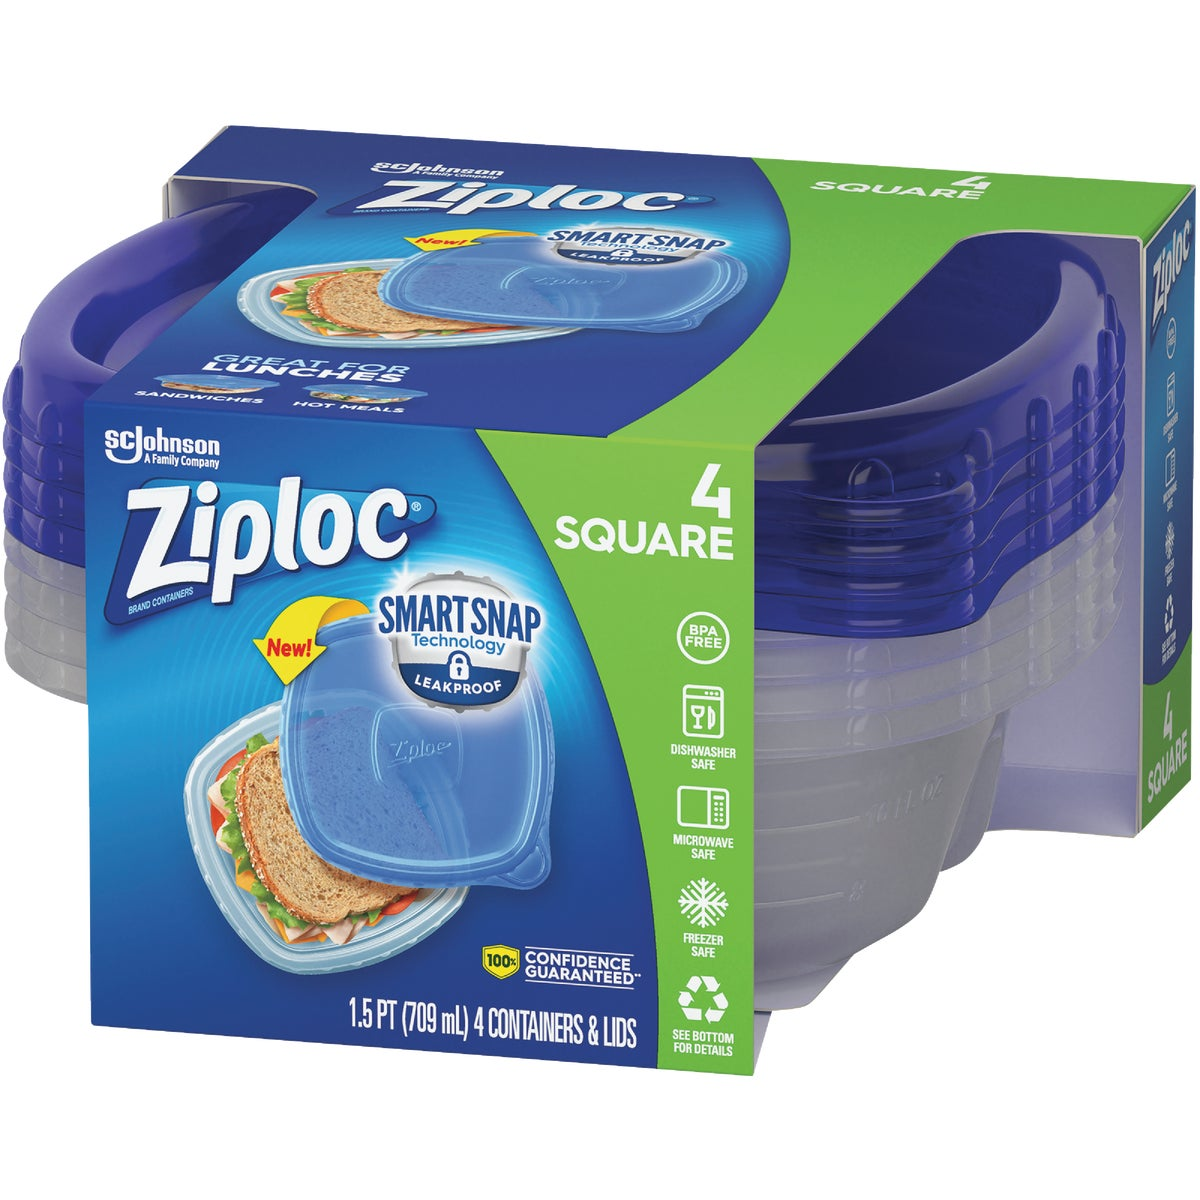 4 PACK FREEZER CONTAINER - 70935 by Sc Johnson